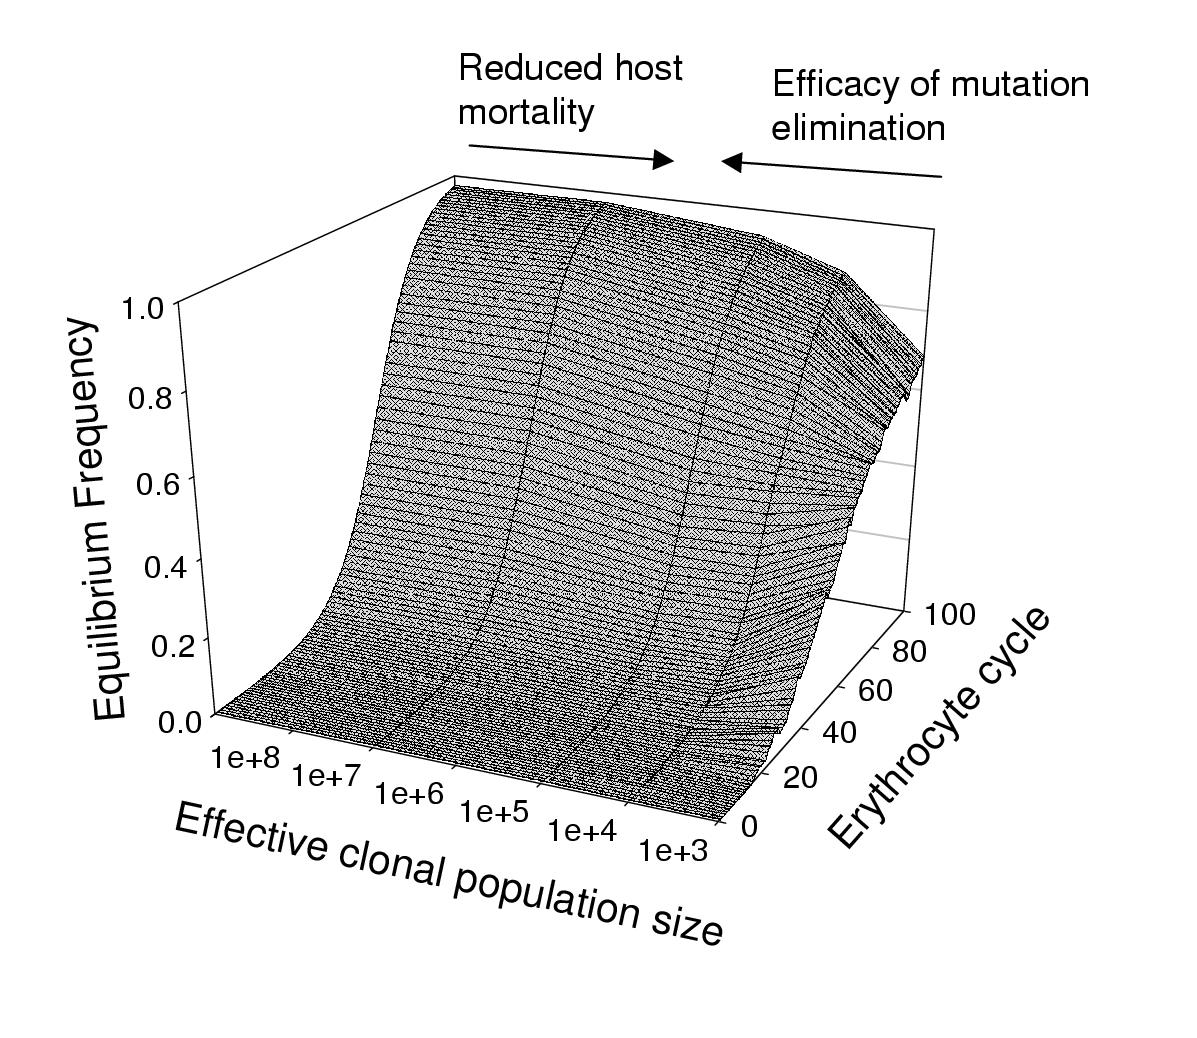 http://static-content.springer.com/image/art%3A10.1186%2F1475-2875-3-2/MediaObjects/12936_2003_Article_68_Fig1_HTML.jpg